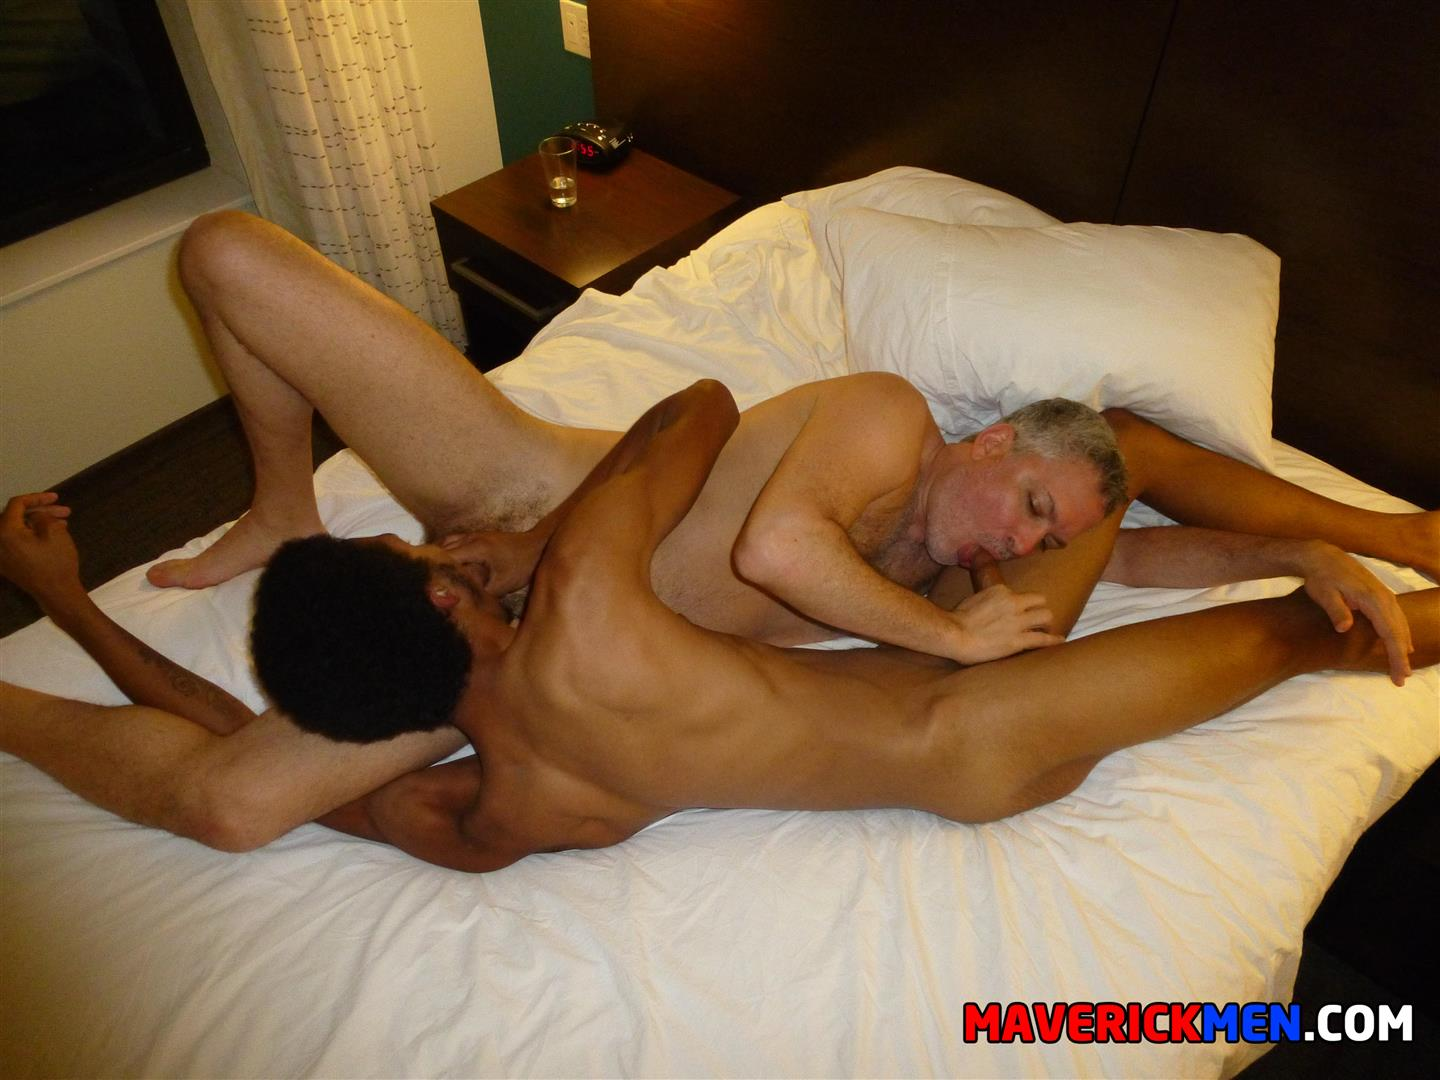 Maverick Men Richie Black Twink Takes Two Muscle Daddy Cocks Bareback Amateur Gay Porn 23 Black Top Twink Takes Two Raw Muscle Daddy Cocks Up The Ass